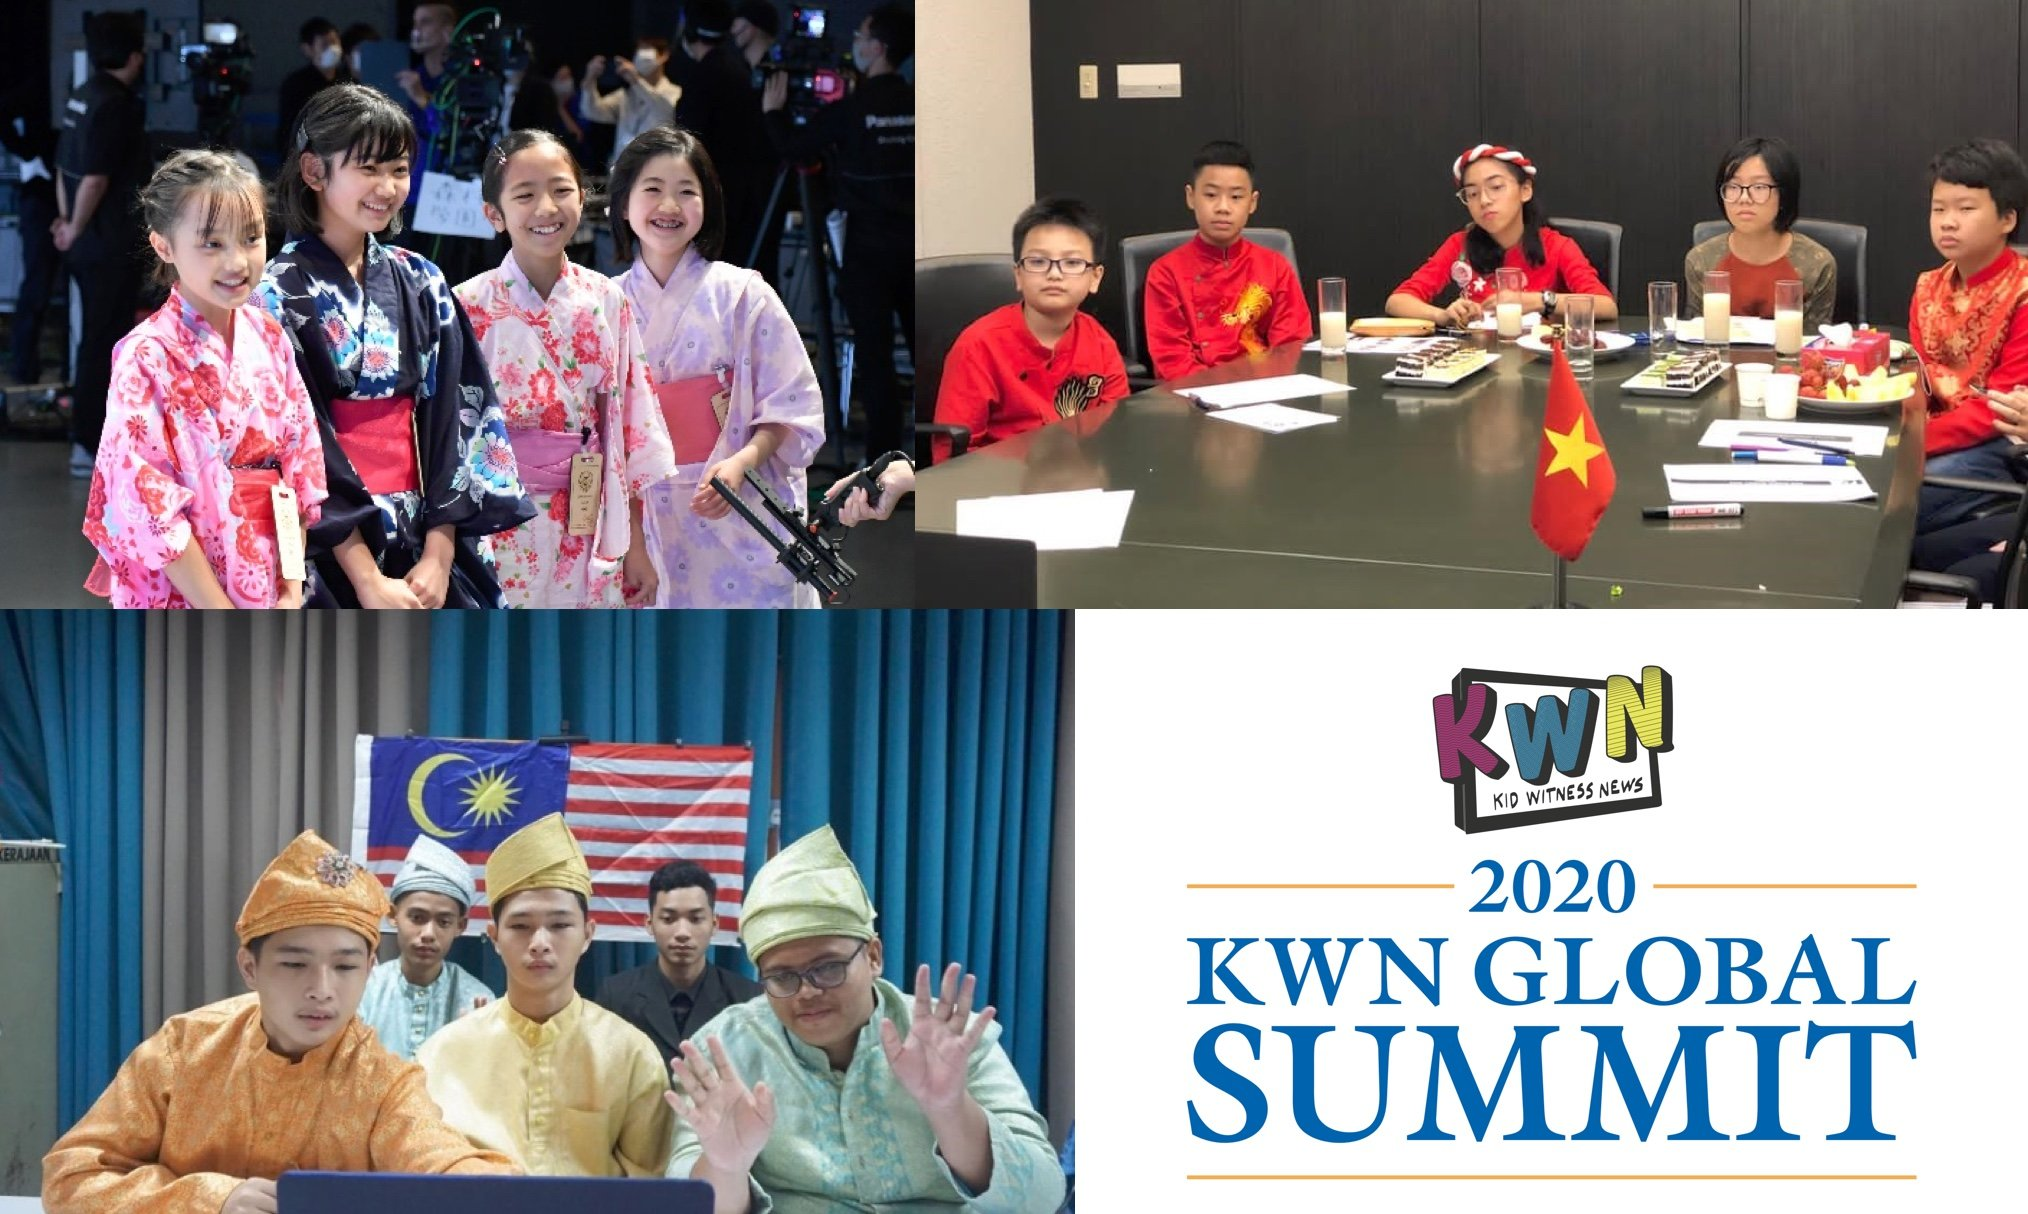 Photo: The Kid Witness News Global Summit 2020